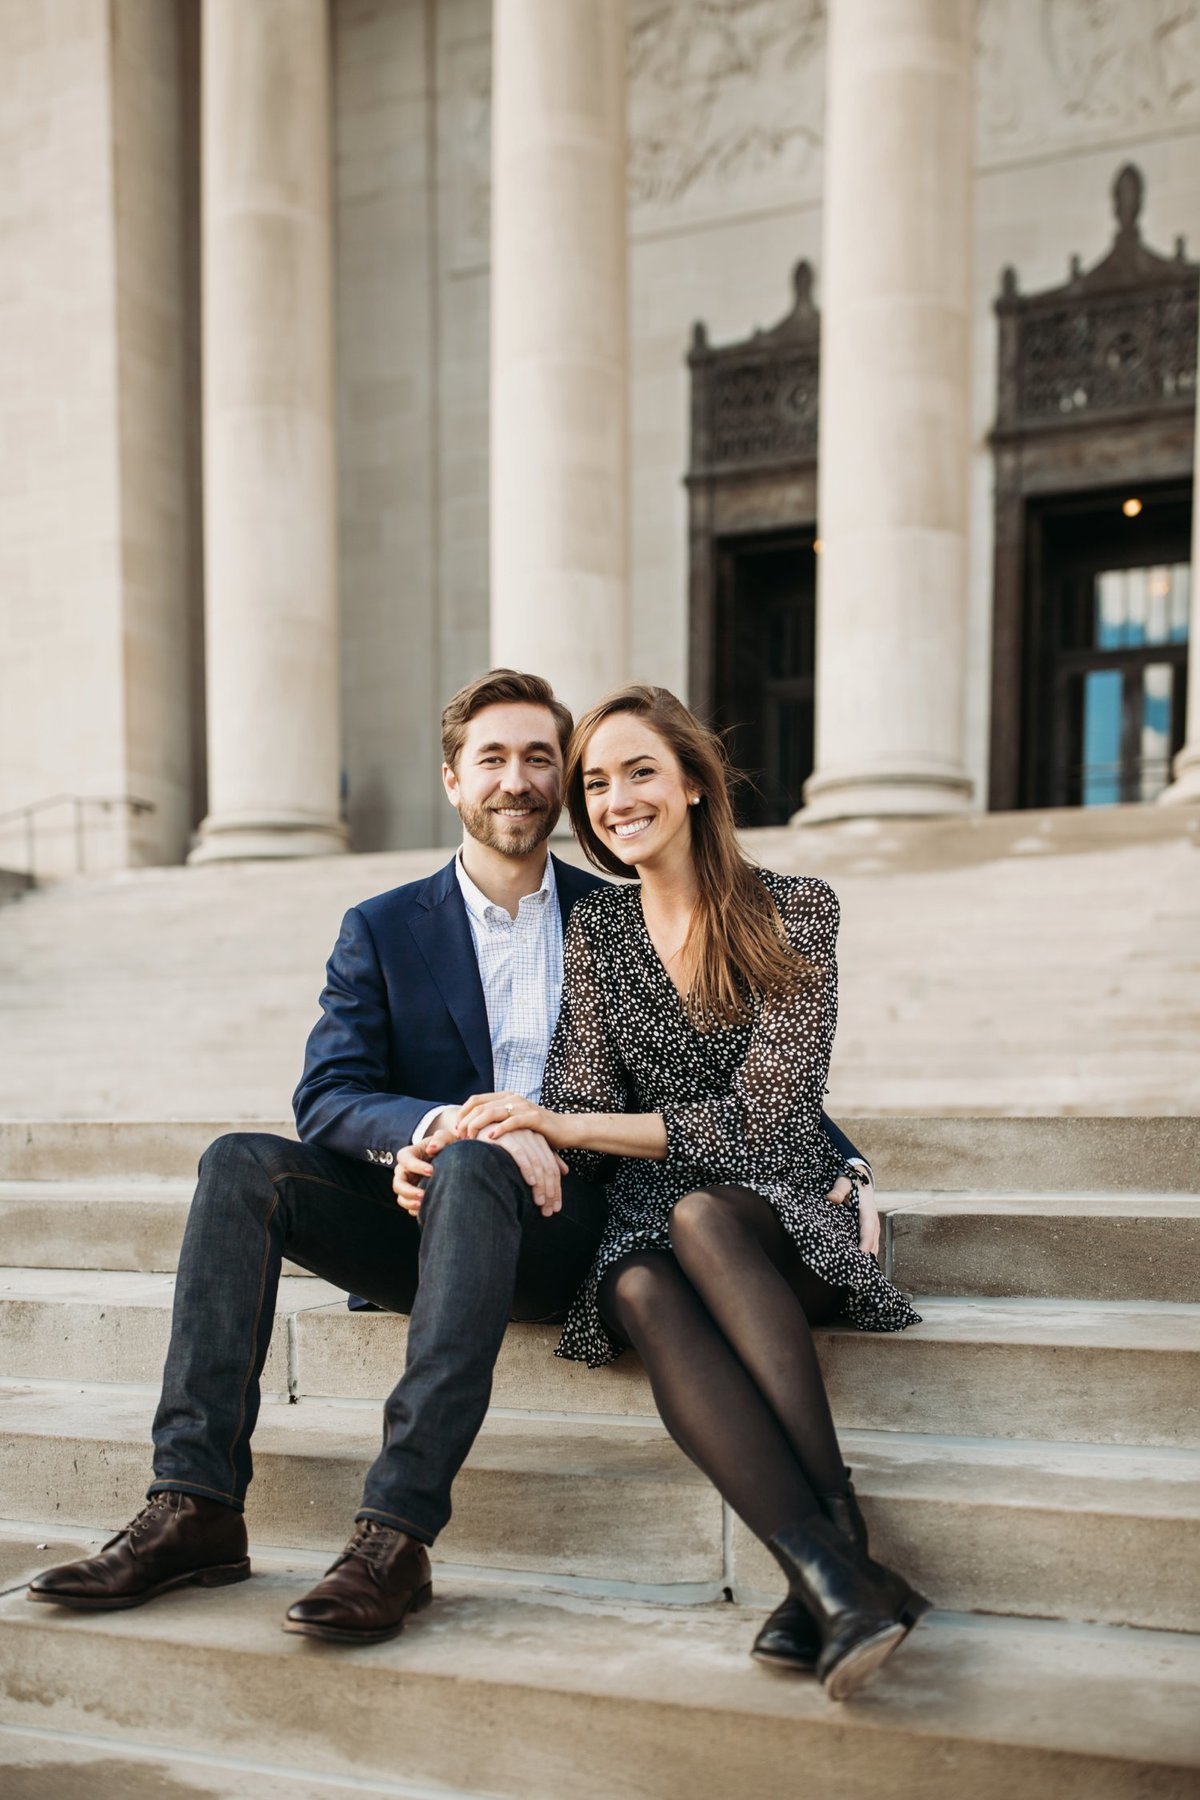 Kansas City Salt Lake City Destination Wedding Photographer_0206